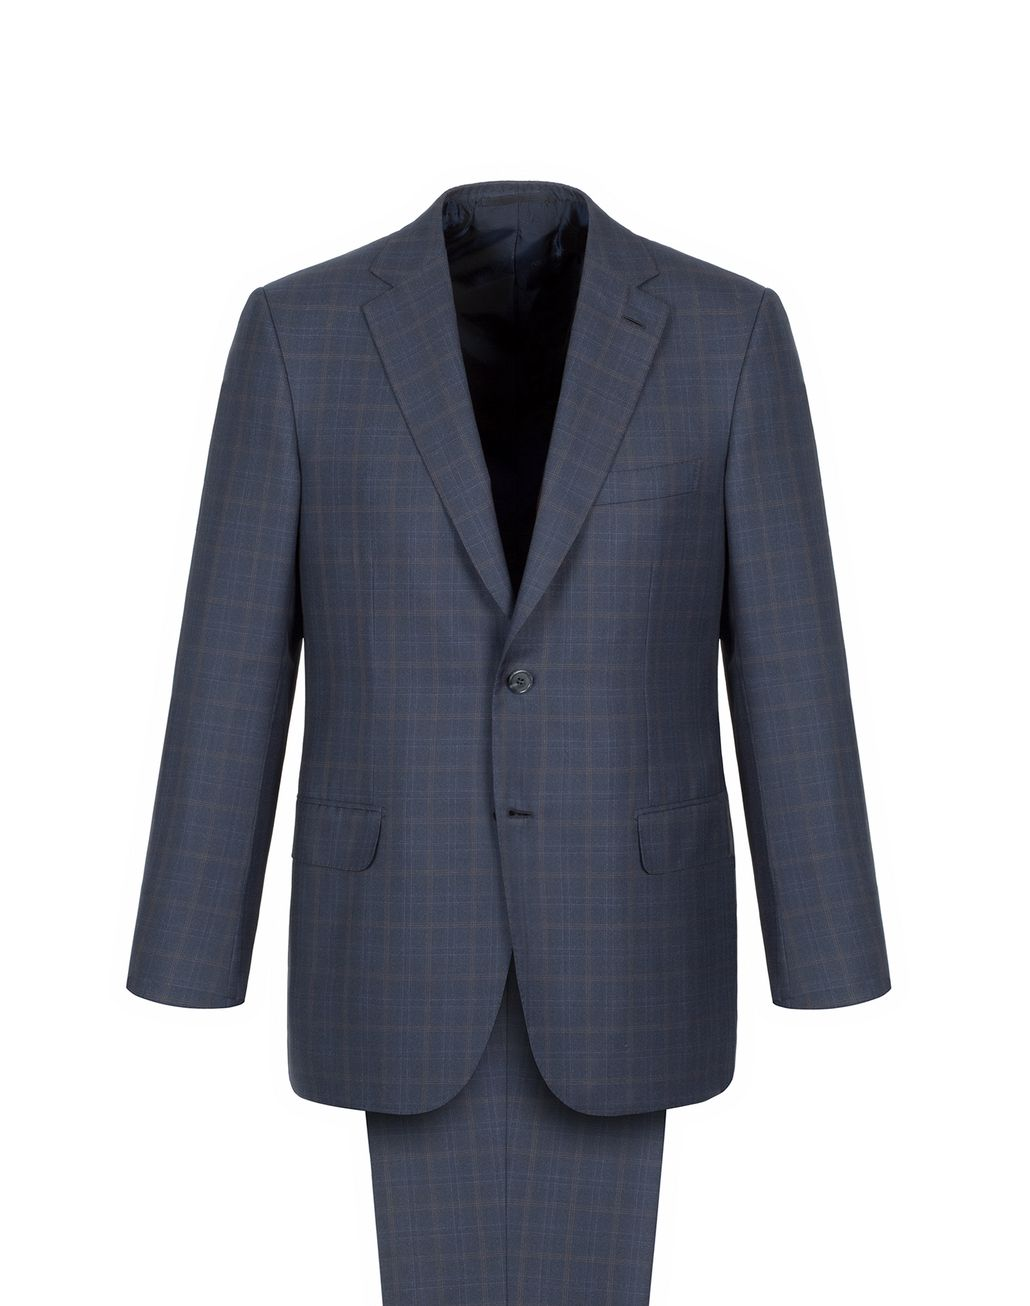 BRIONI Navy-Blue Subtle Check Brunico Suit Suits & Jackets U f